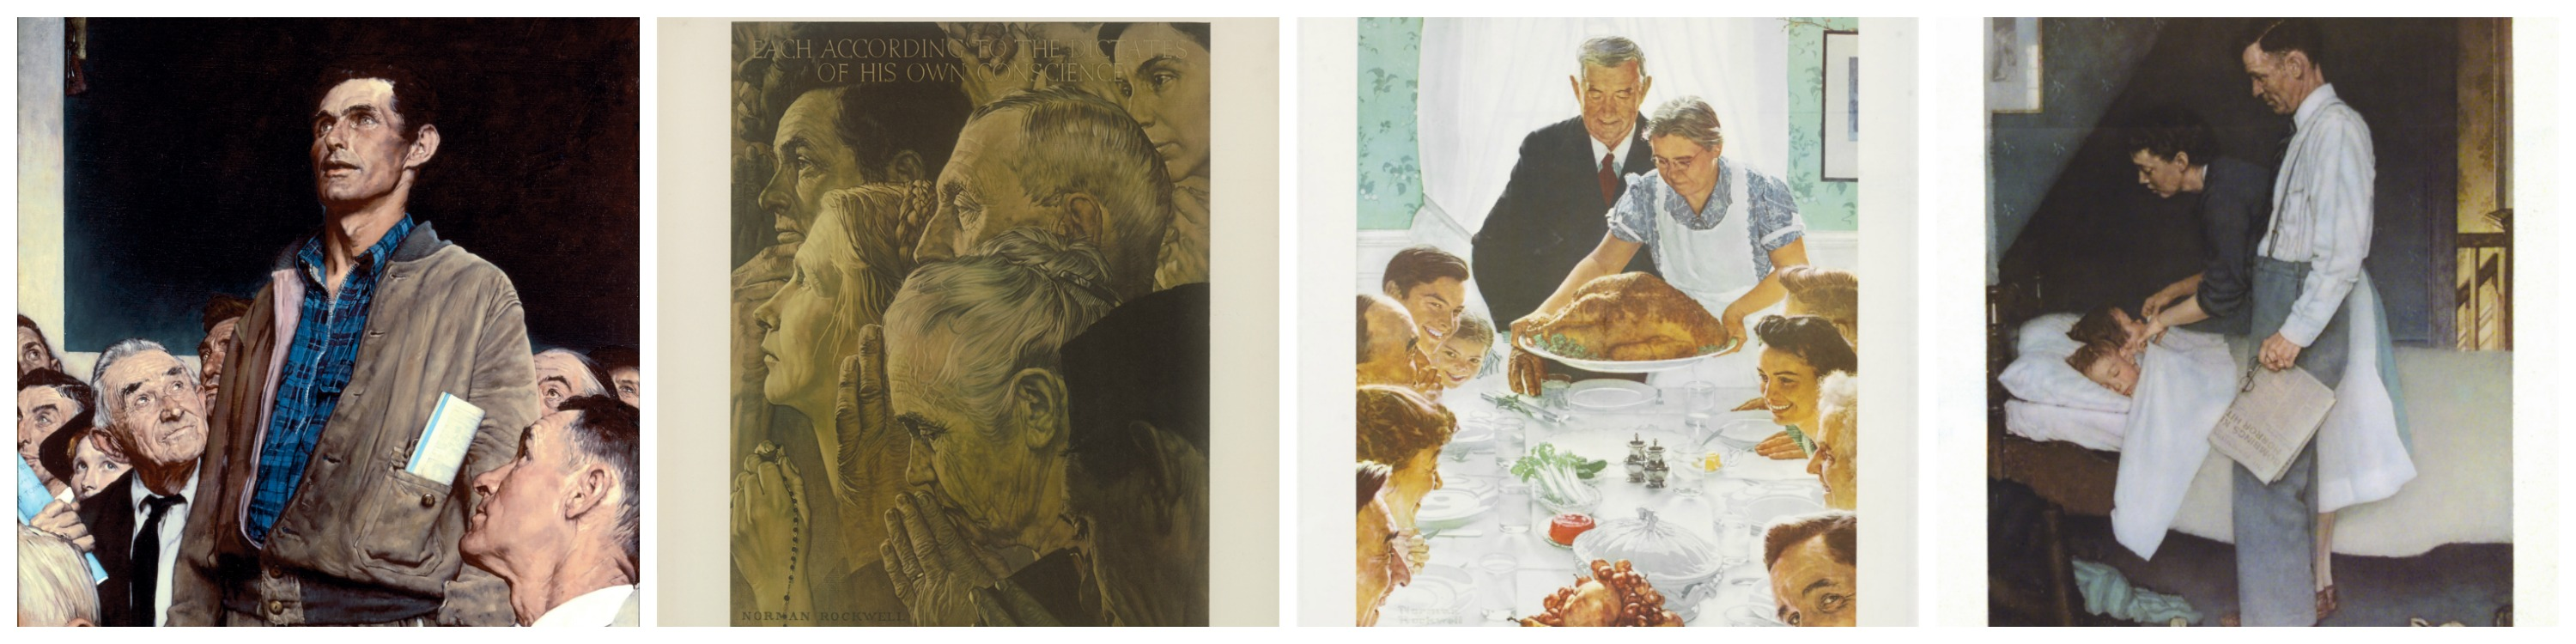 "Norman Rockwell's ""Four Freedoms"" (1943)"